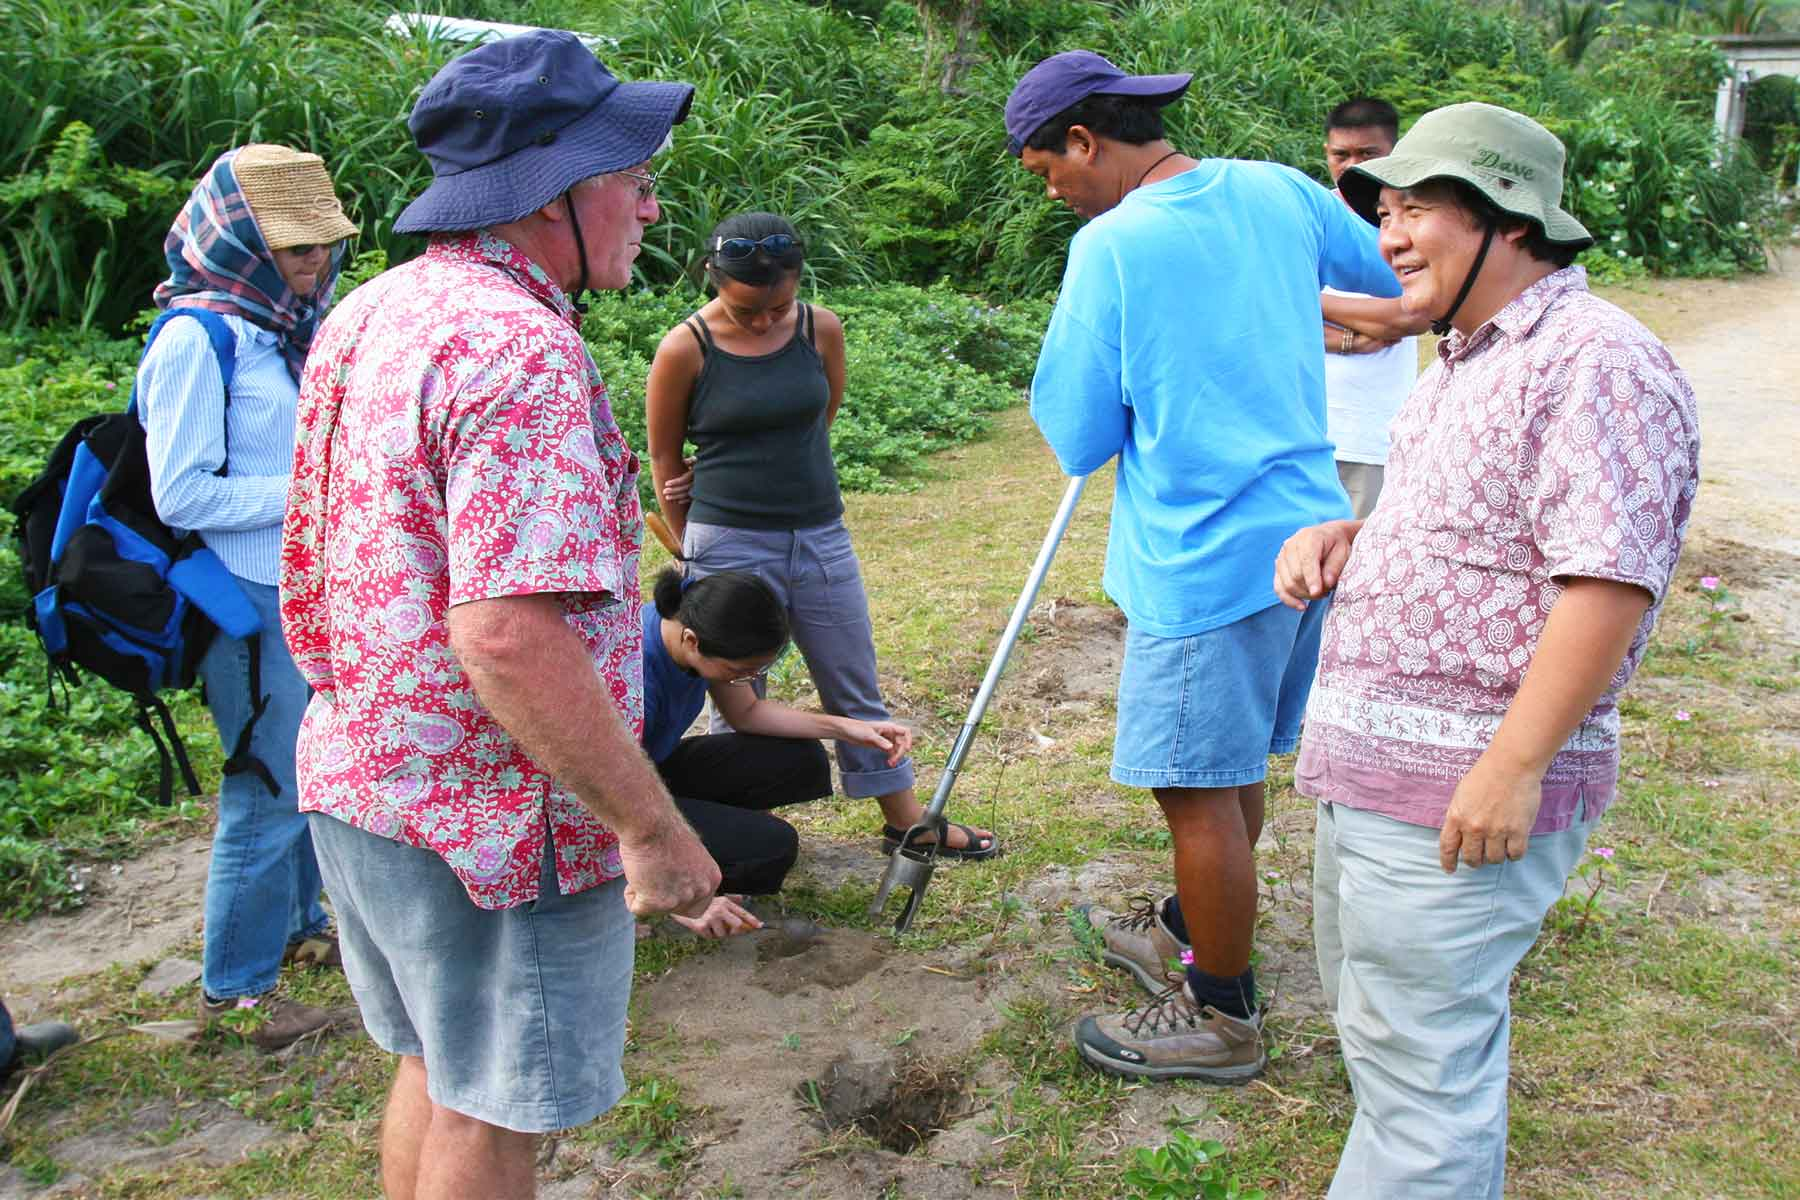 Archaeological survey - March 2006, with Peter Bellwood - Batanas Islands - Steven Andrew Martin